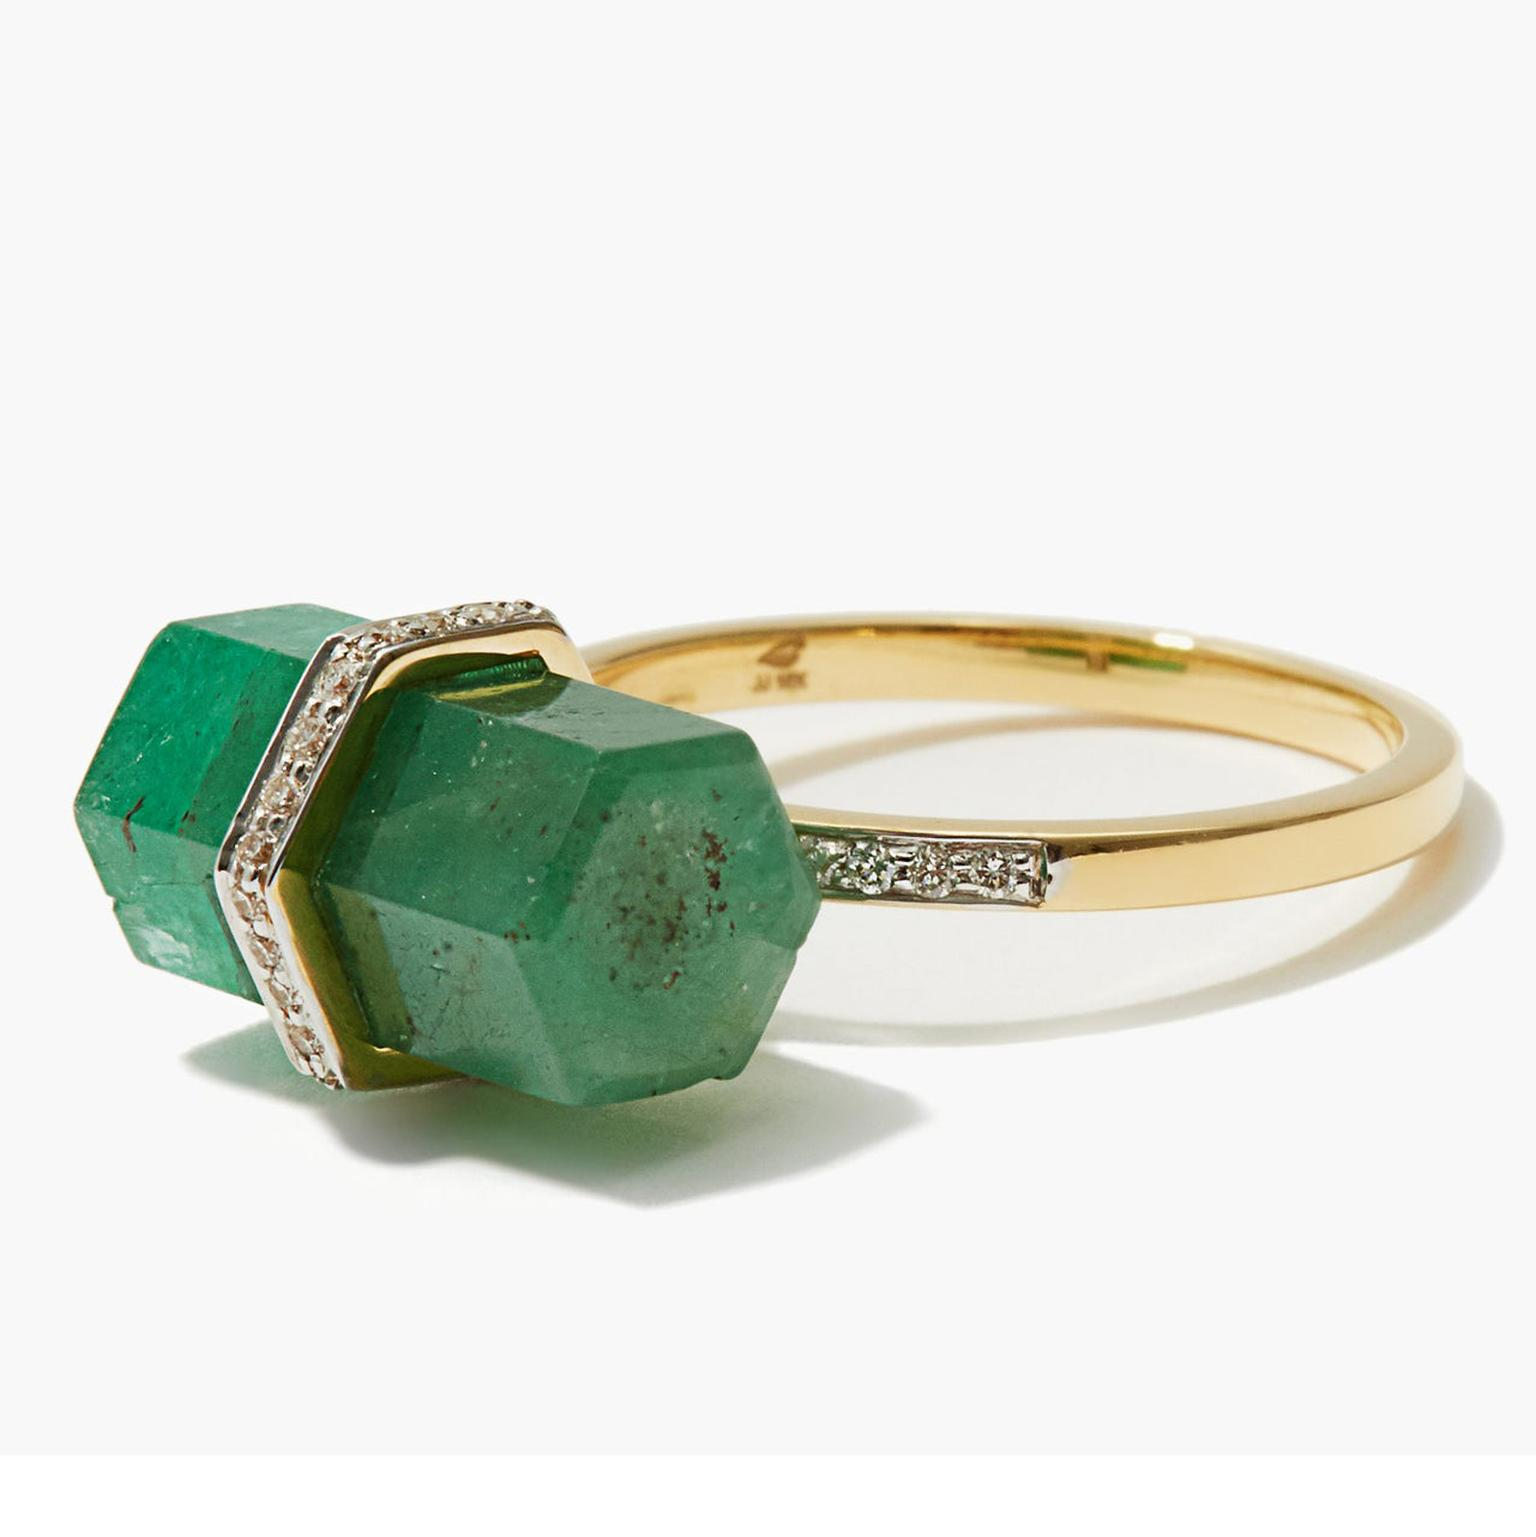 Jade Jagger Diamond, emerald ring